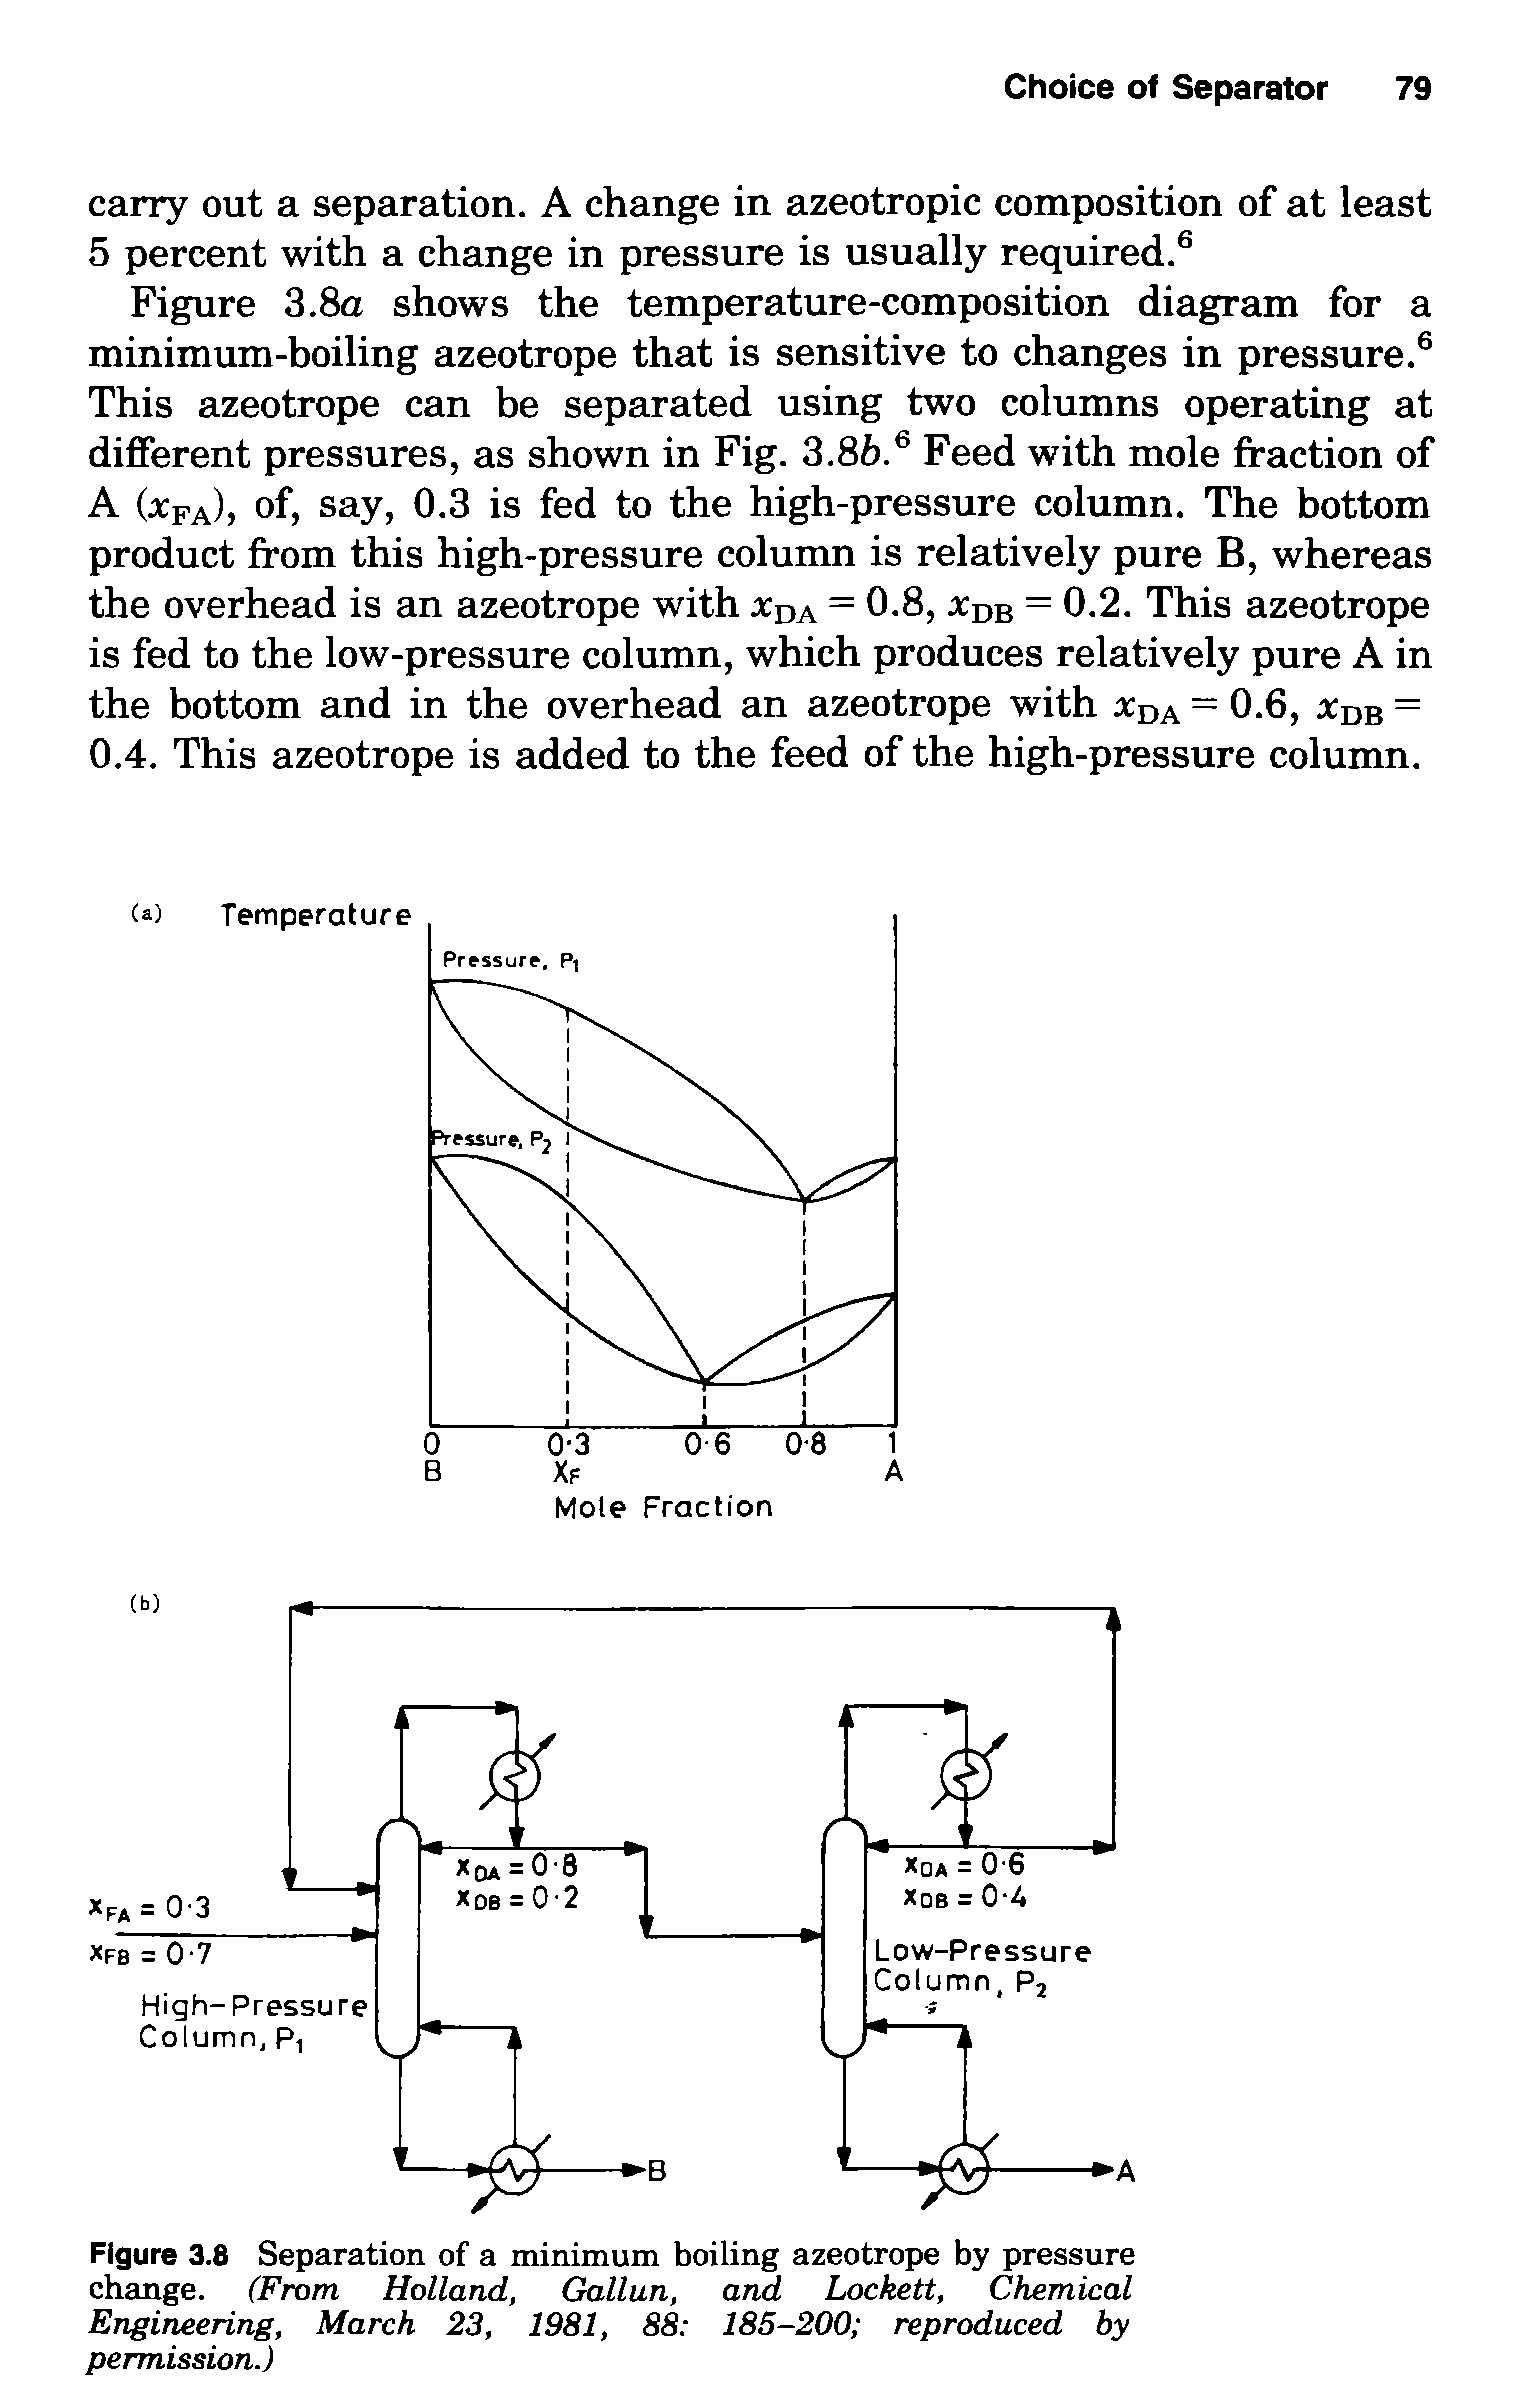 Figure 3.8a shows the temperature-composition diagram for a minimum-boiling azeotrope that is sensitive to changes in pressure. This azeotrope can be separated using two columns operating at different pressures, as shown in Fig. 3.86. Feed with mole fraction of A Ufa)) of, say, 0.3 is fed to the high-pressure column. The bottom product from this high-pressure column is relatively pure B, whereas the overhead is an azeotrope with jcda = 0-8, jcdb = 0.2. This azeotrope is fed to the low-pressure column, which produces relatively pure A in the bottom and in the overhead an azeotrope with jcda = 0.6, jcdb = 0.4. This azeotrope is added to the feed of the high-pressure column.